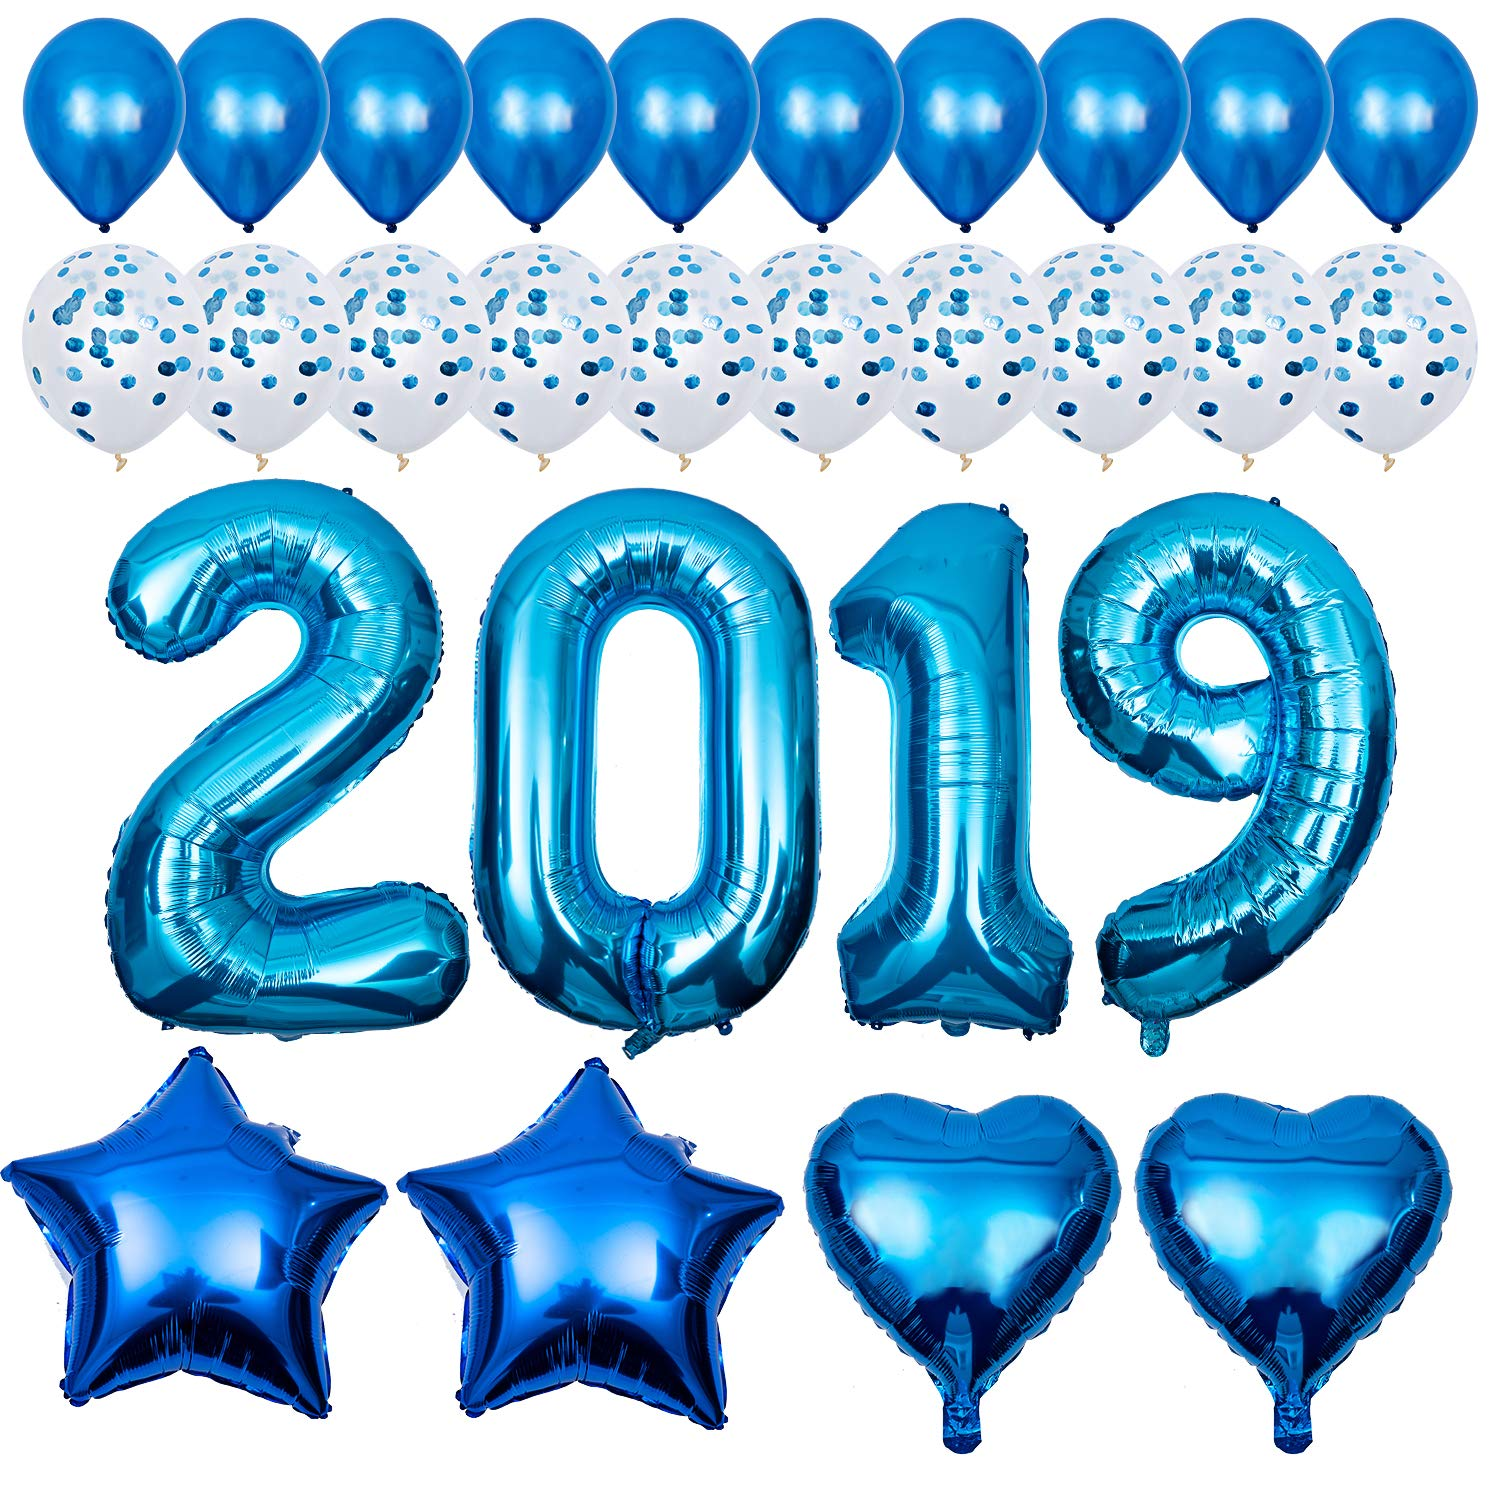 2019 Balloons Kit Blue,  Graduation Party Balloons - 40 Inch Number Foil Balloons, Confetti Balloons for Wedding Bridal Shower and Children Graduation Party Decorations Supplies